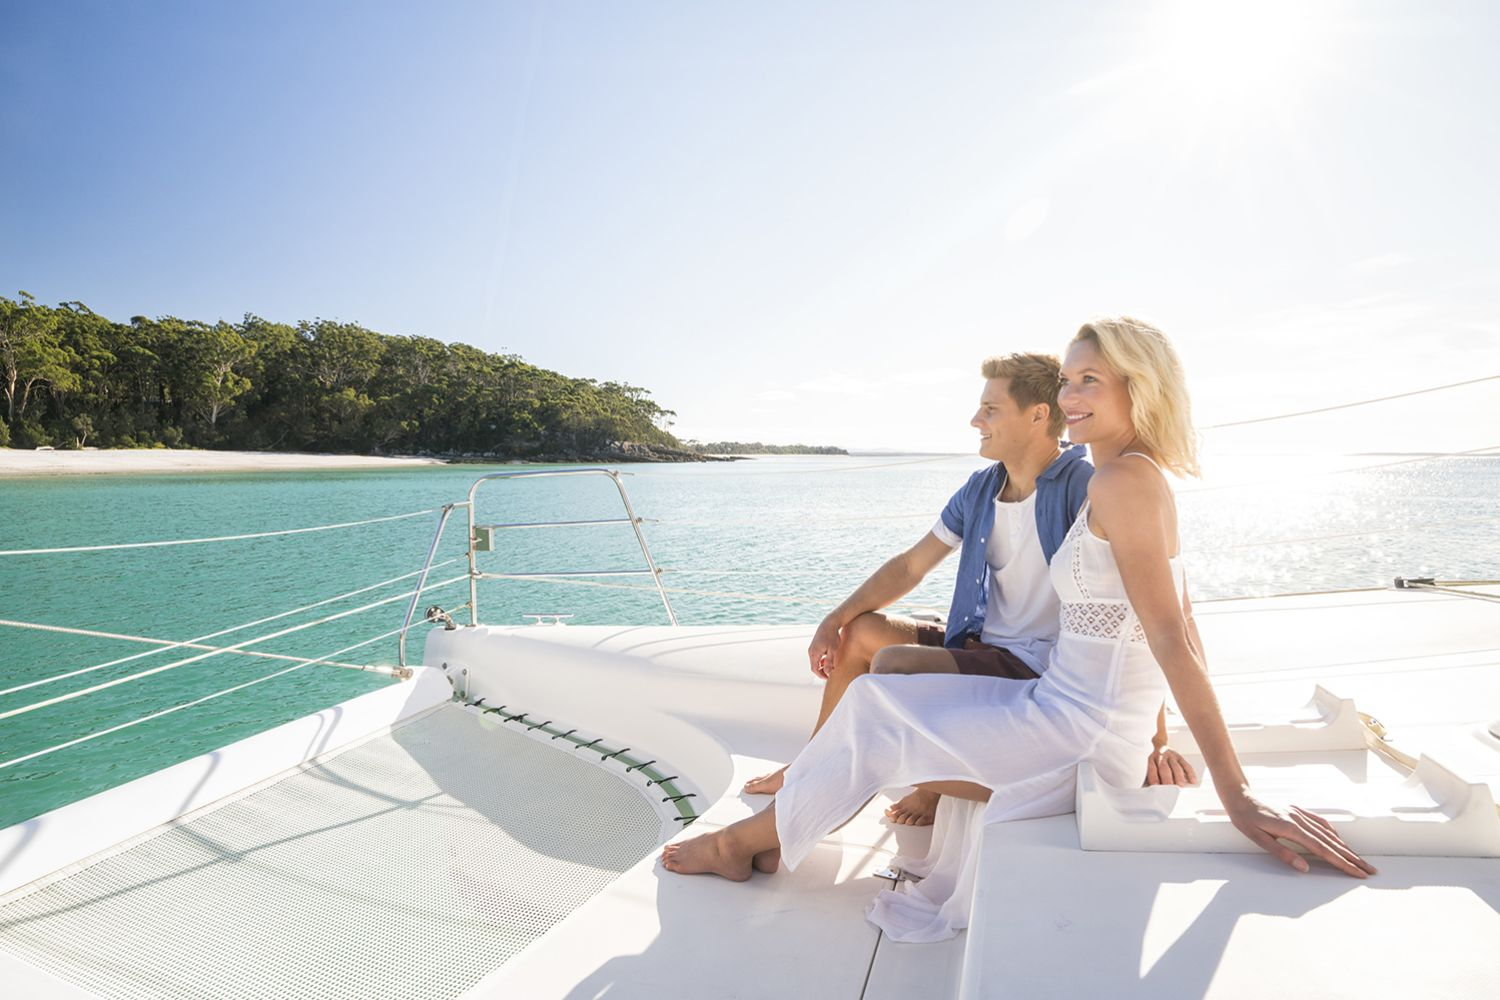 Couple enjoying a romantic day on the water with luxury sailing charter Discover Jervis Bay